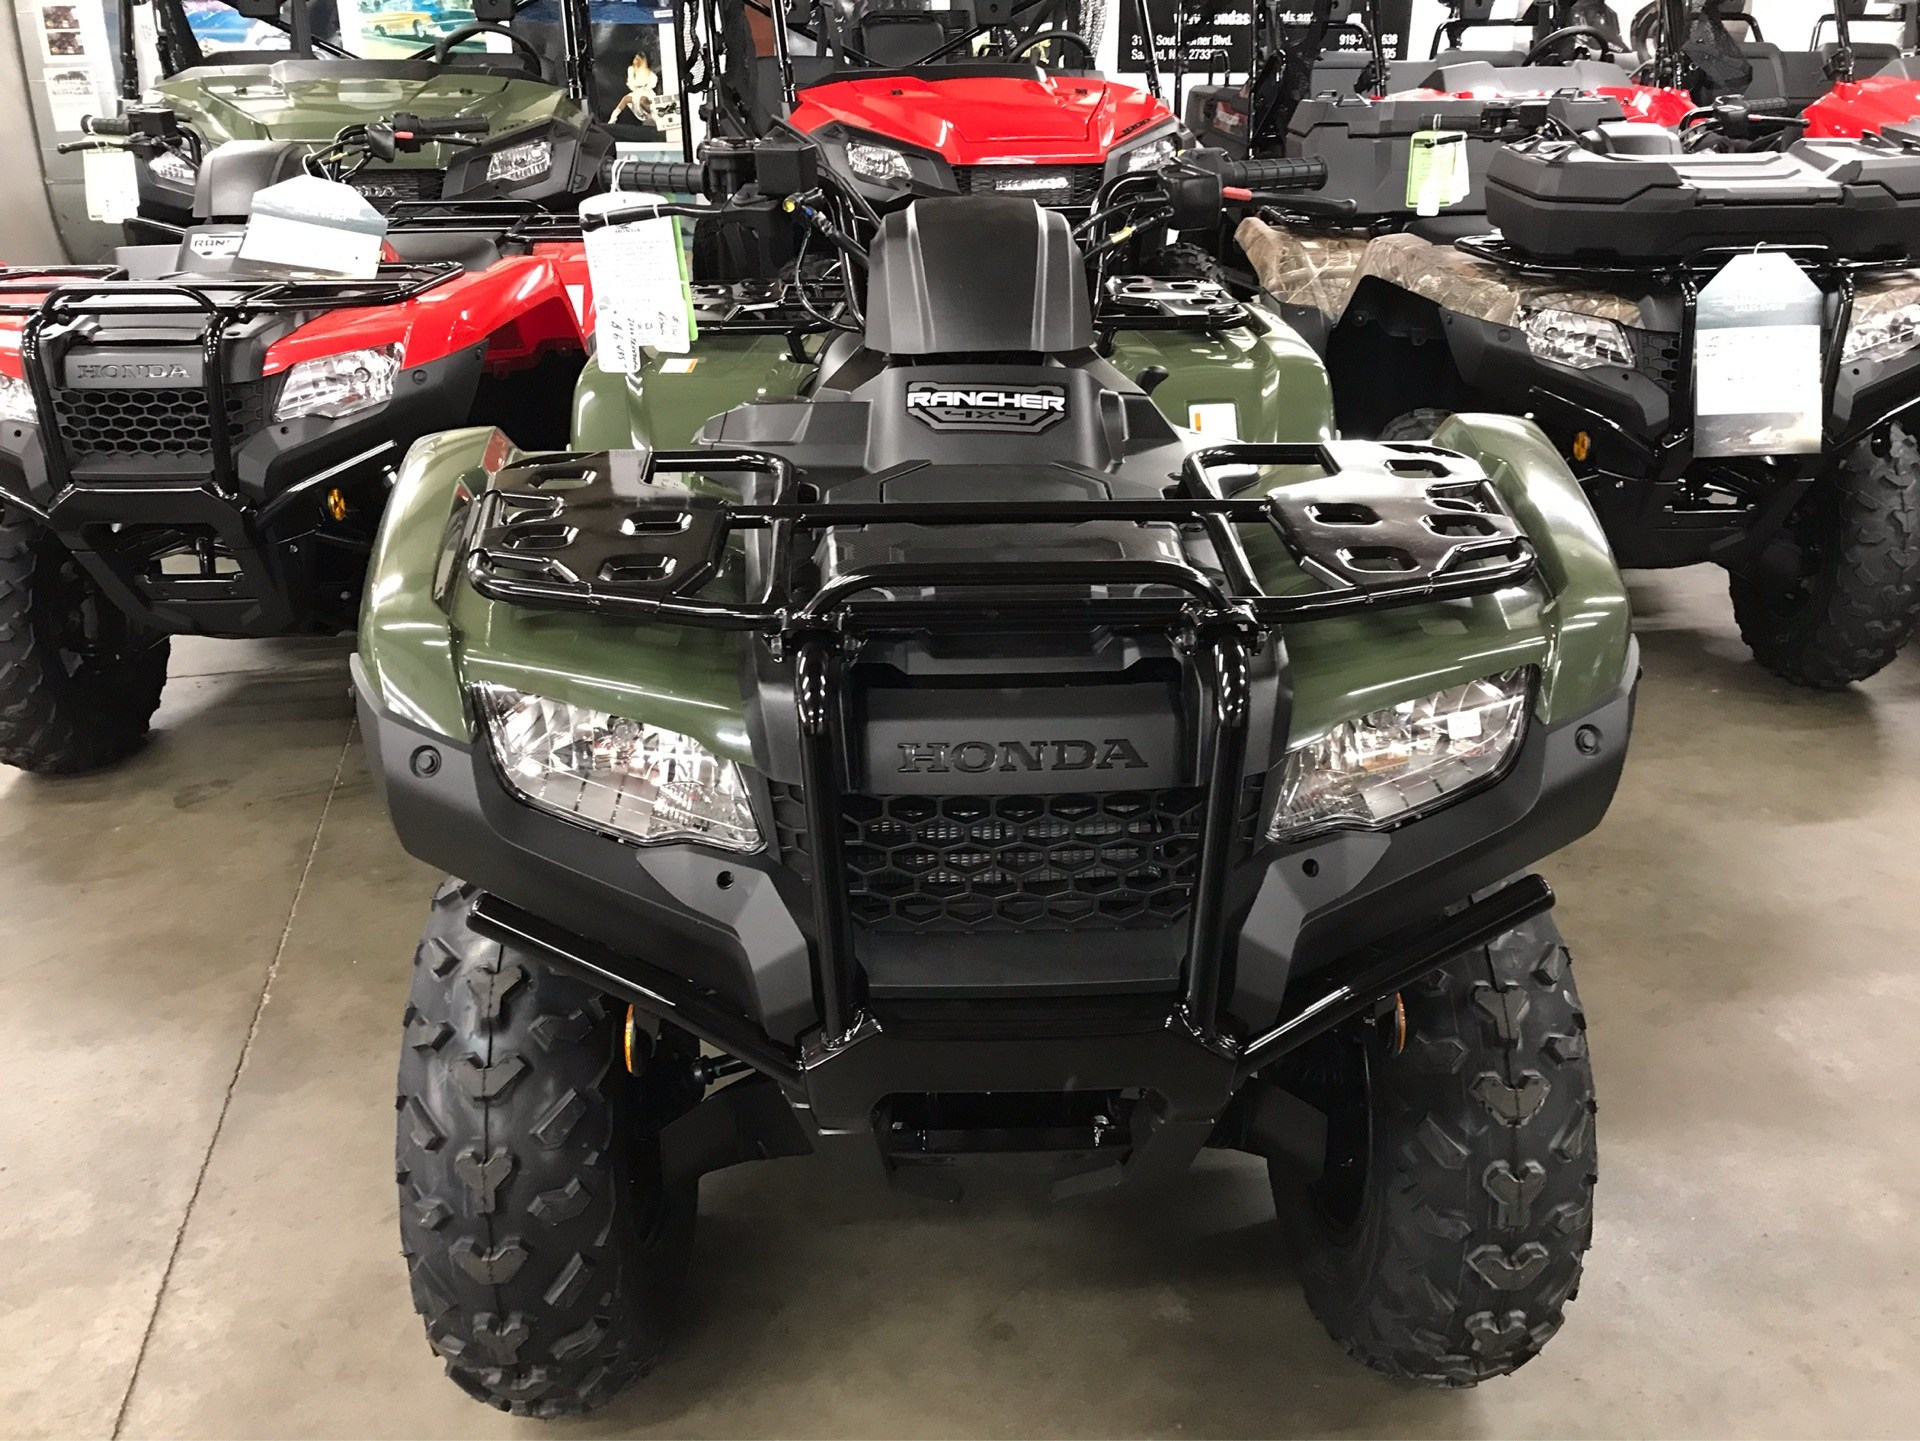 2020 Honda FourTrax Rancher 4x4 in Sanford, North Carolina - Photo 3